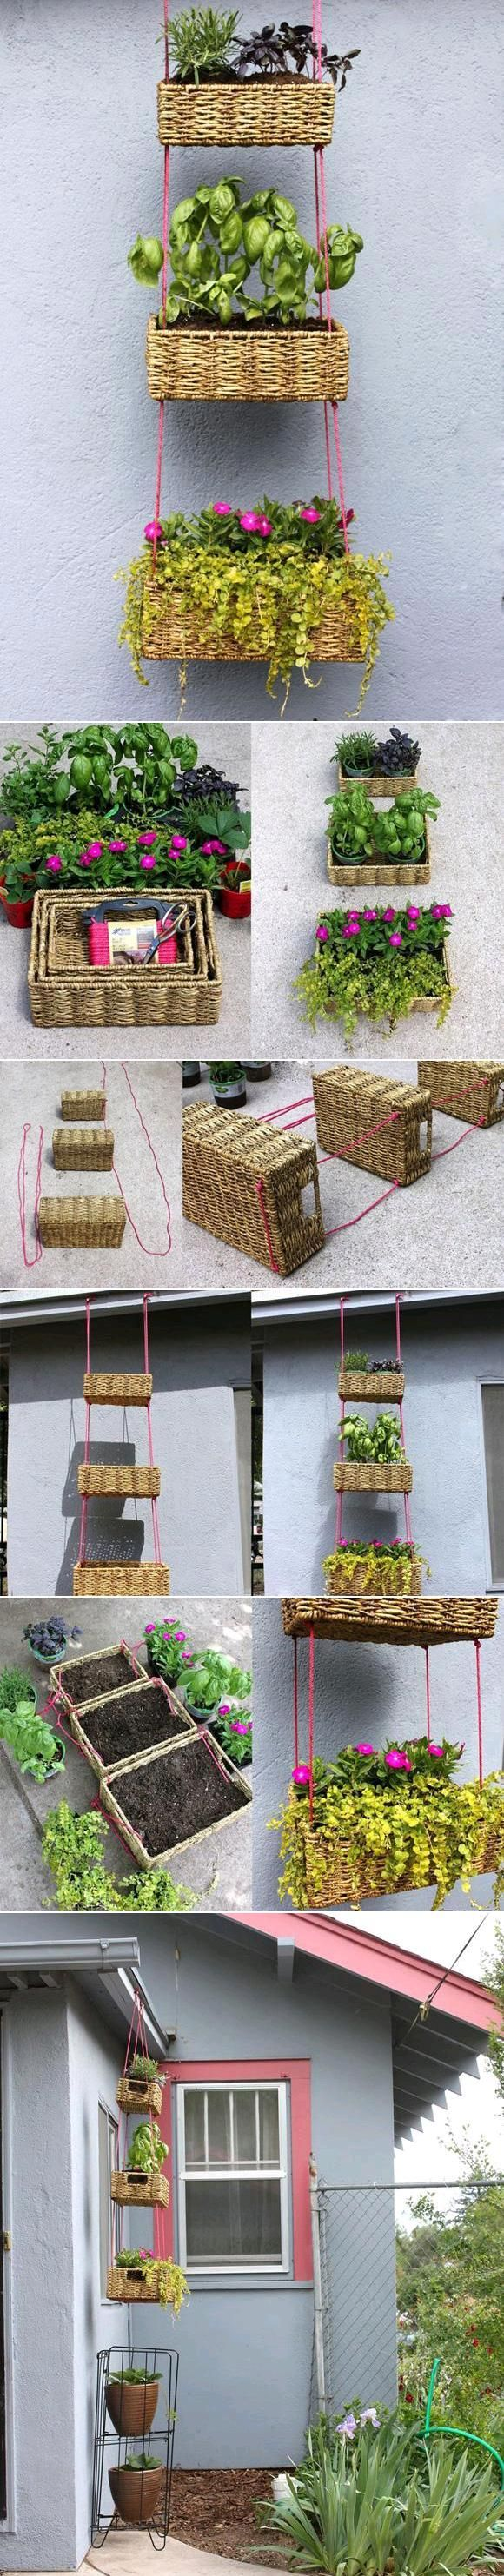 DIY Hanging Basket Flower Pot